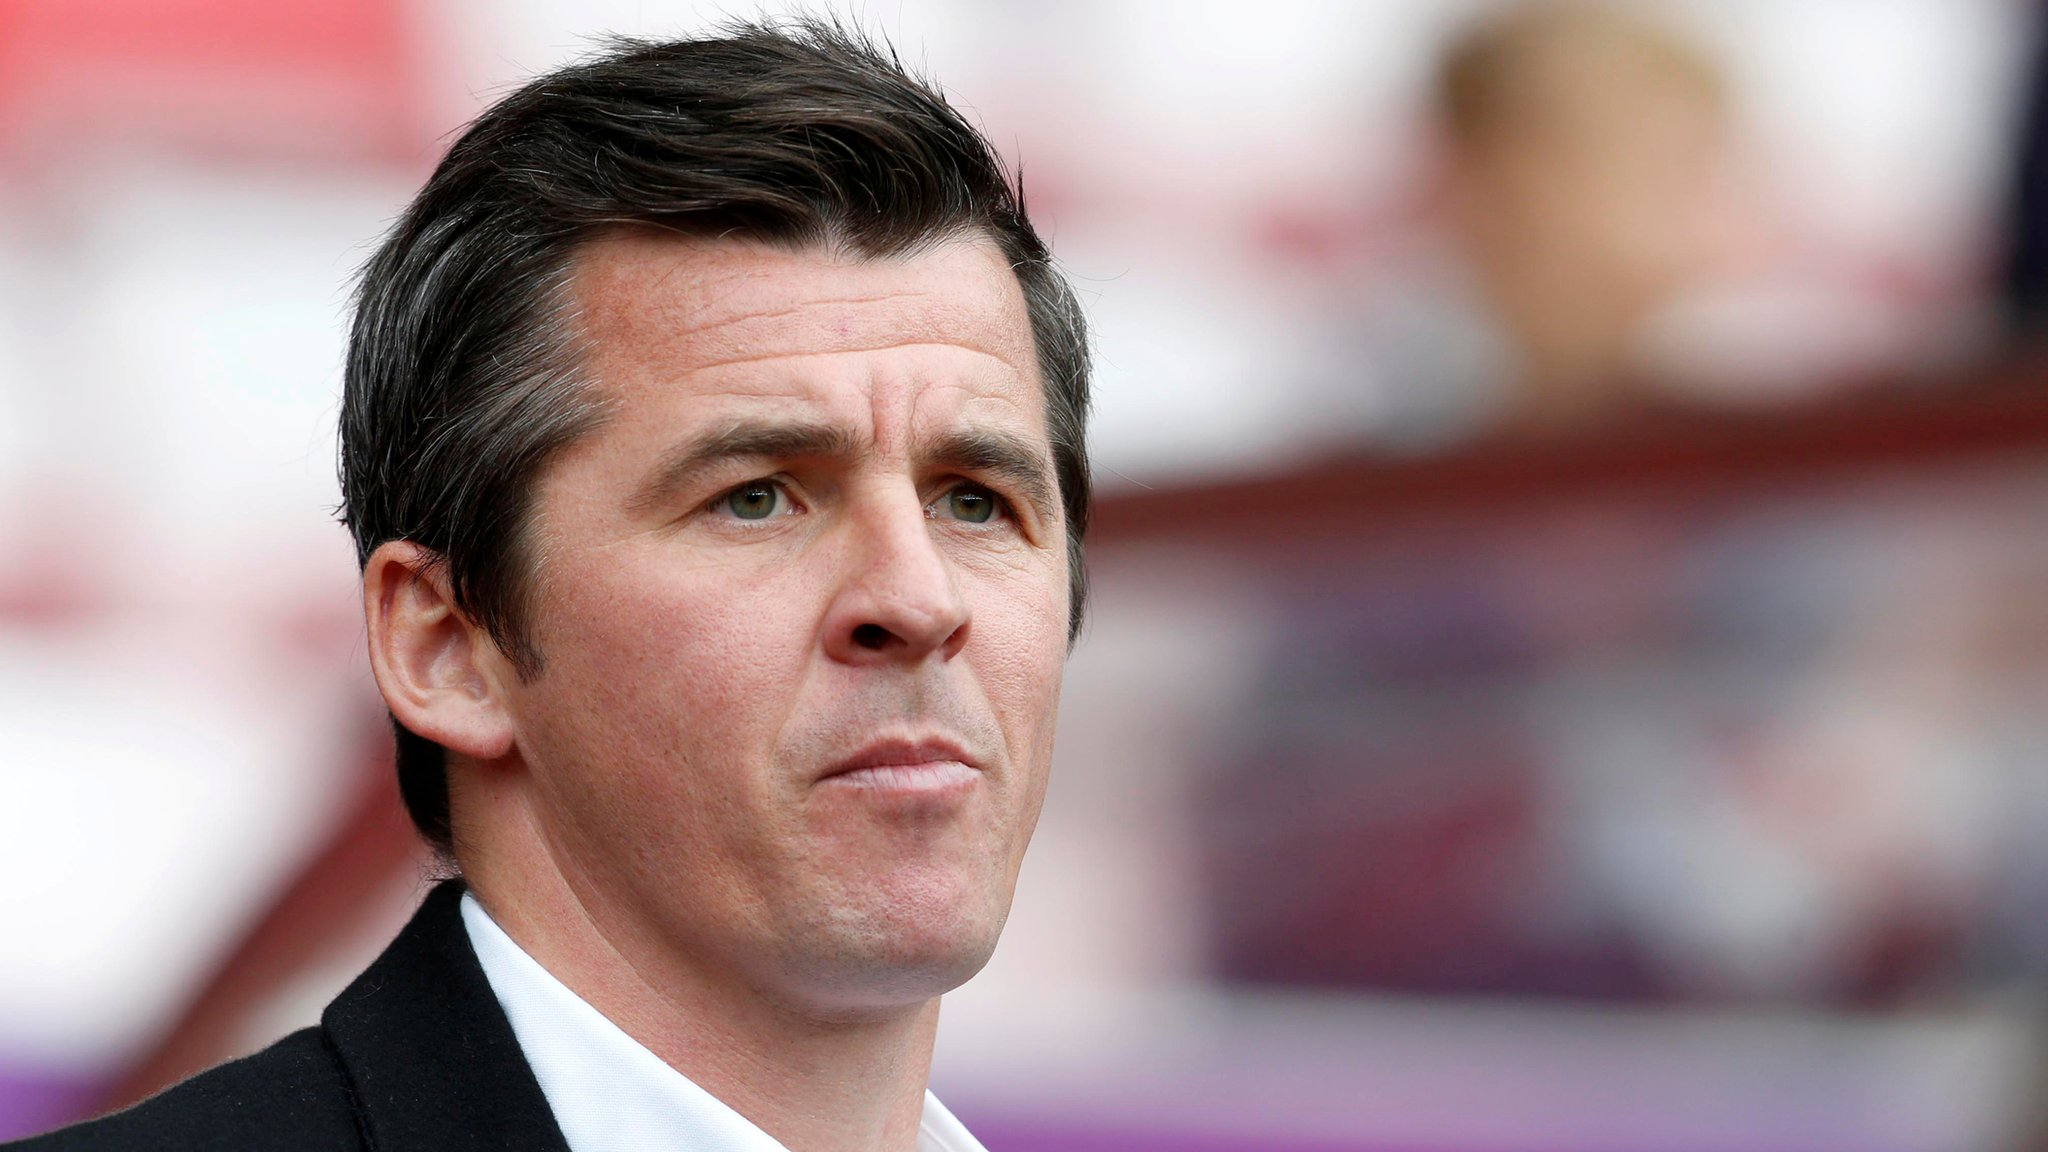 Barton 'emphatically' denies assaulting opposition manager